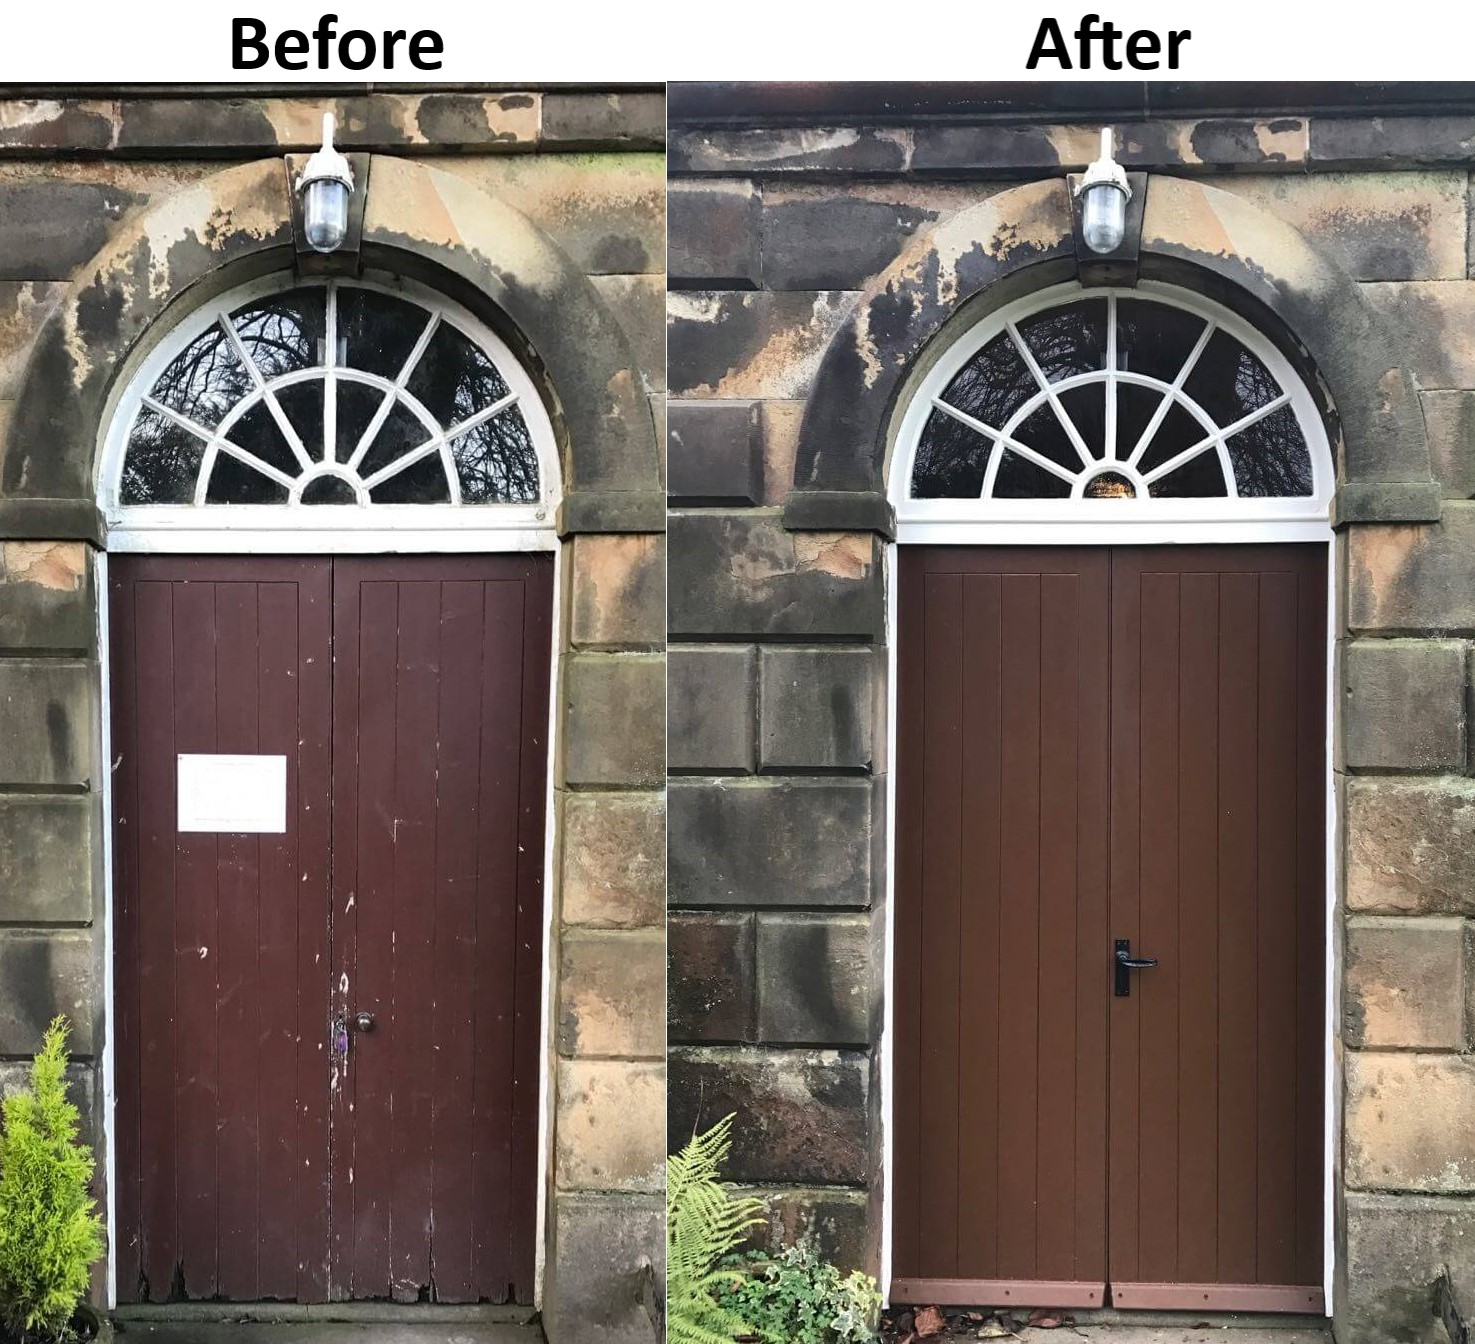 St Pauls Door BeforeAfter.jpg